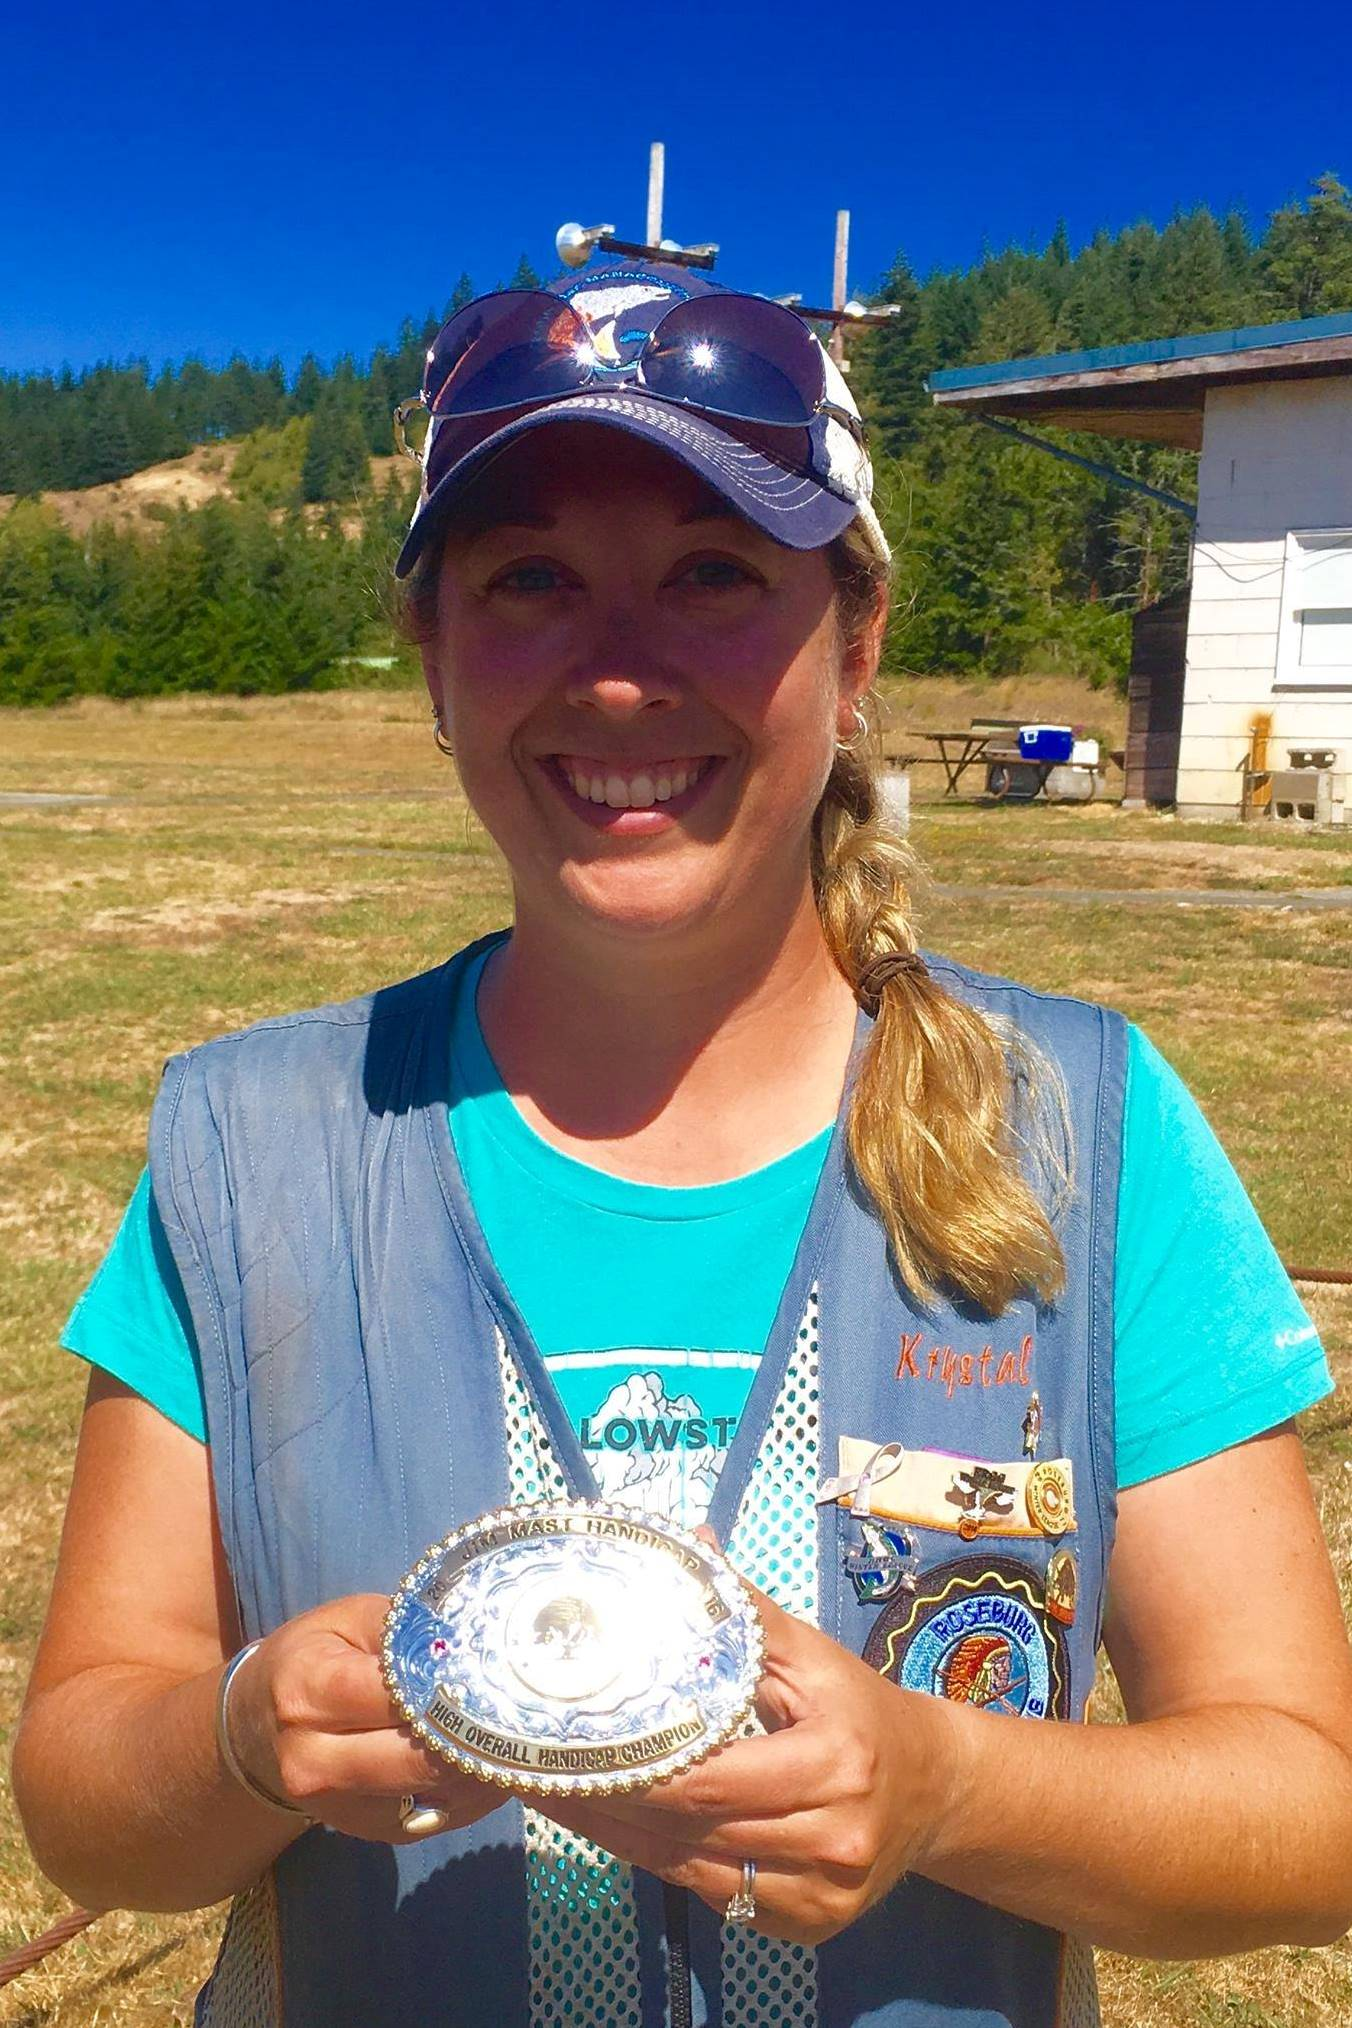 Krys Schindler wins Jim Mast buckle at Myrtle Point-1st time win by a female shooter